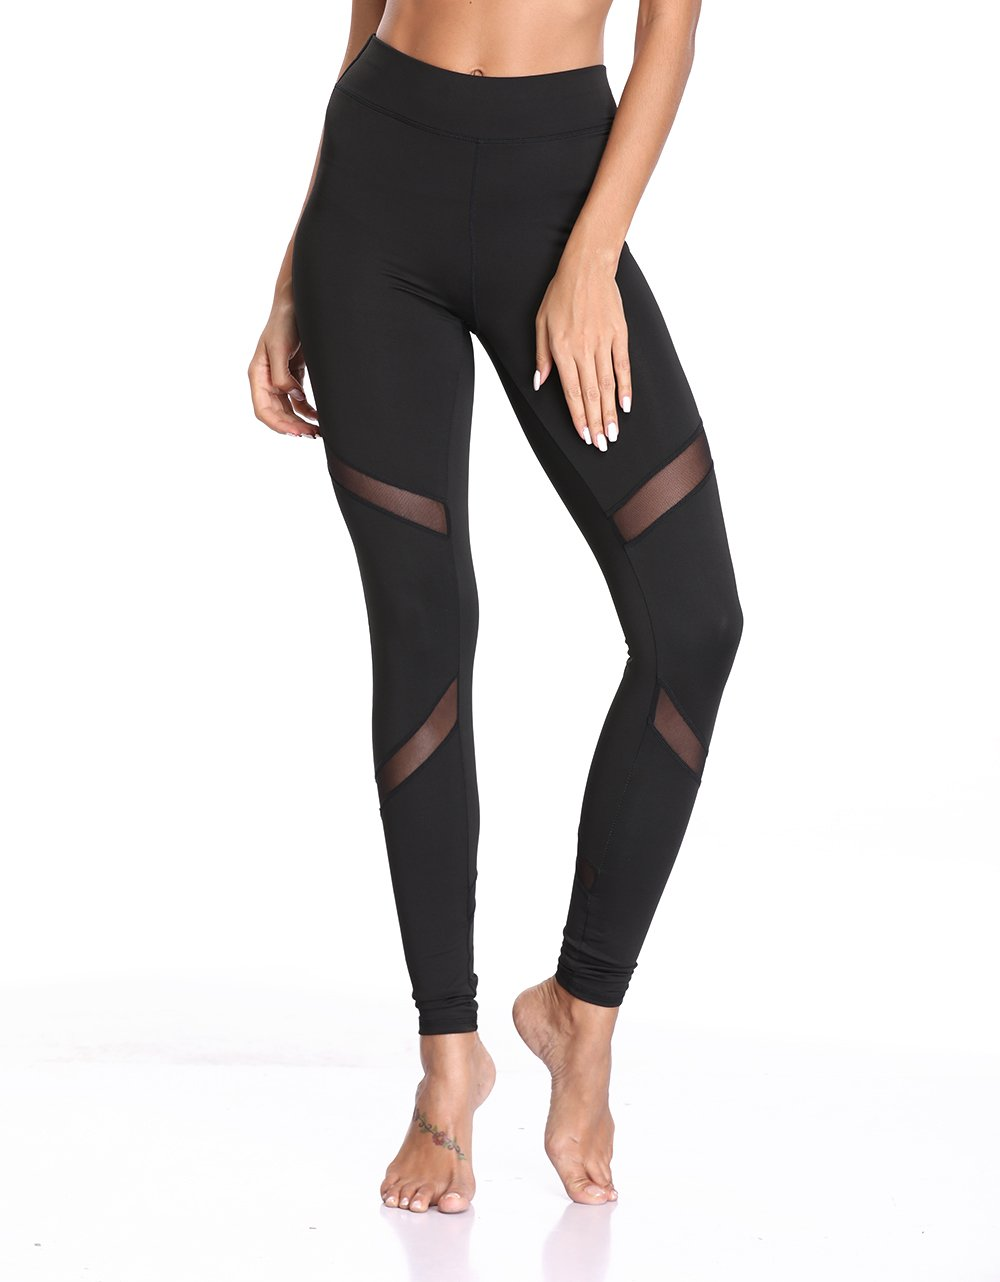 378fa1bfedba5 This high waist tummy control leggings are perfect for yoga, cycling,  aerobics, gymnastics, running, jogging, fitness, or daily casual lounge use  leaving ...